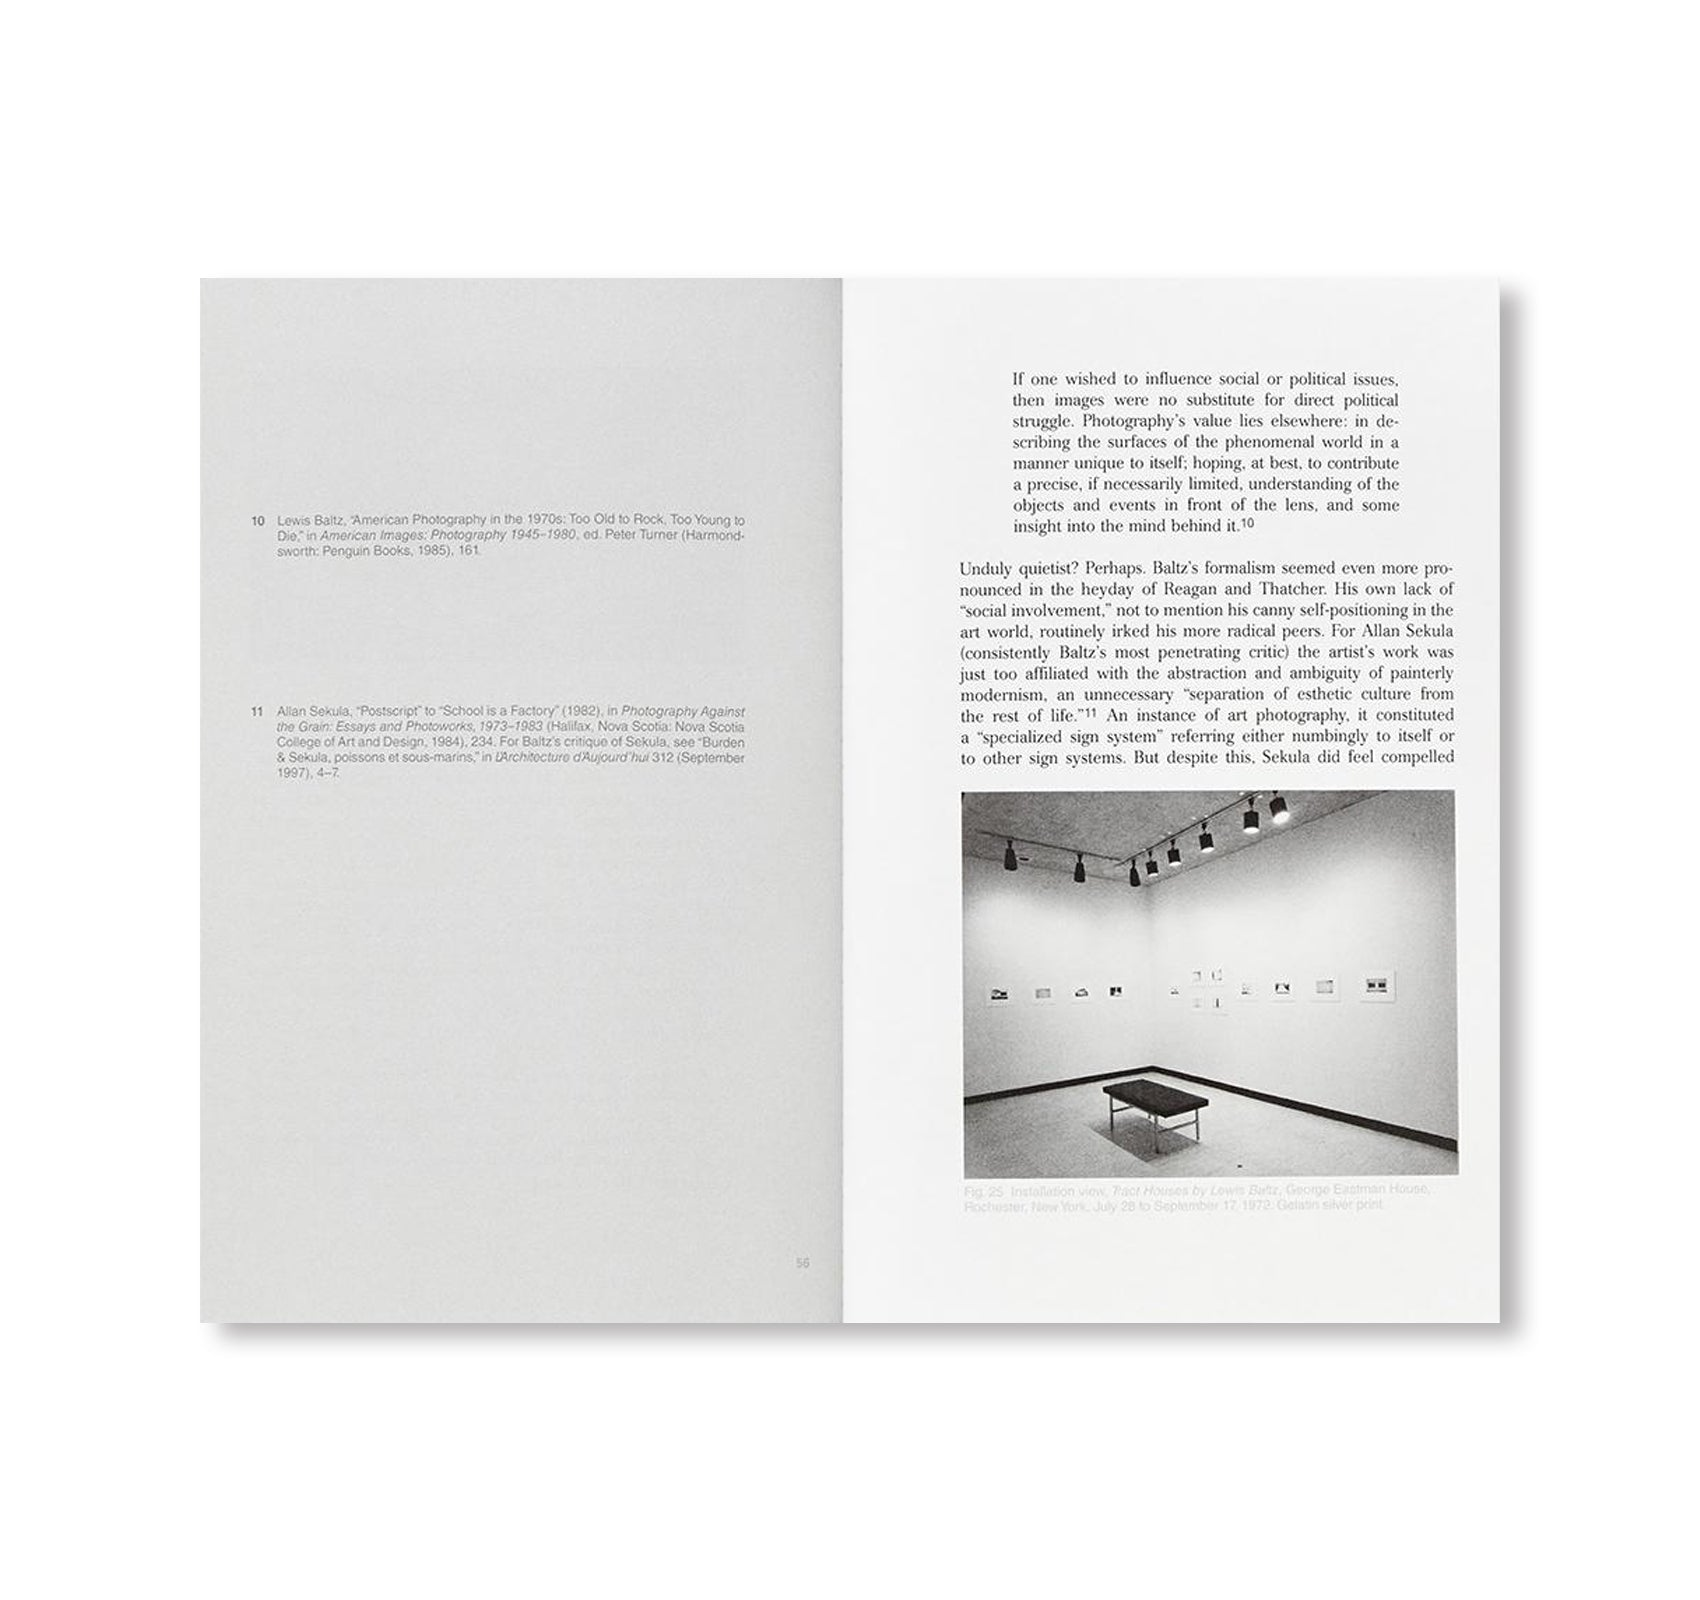 AN INTERVIEW WITH LEWIS BALTZ by Duncan Forbes